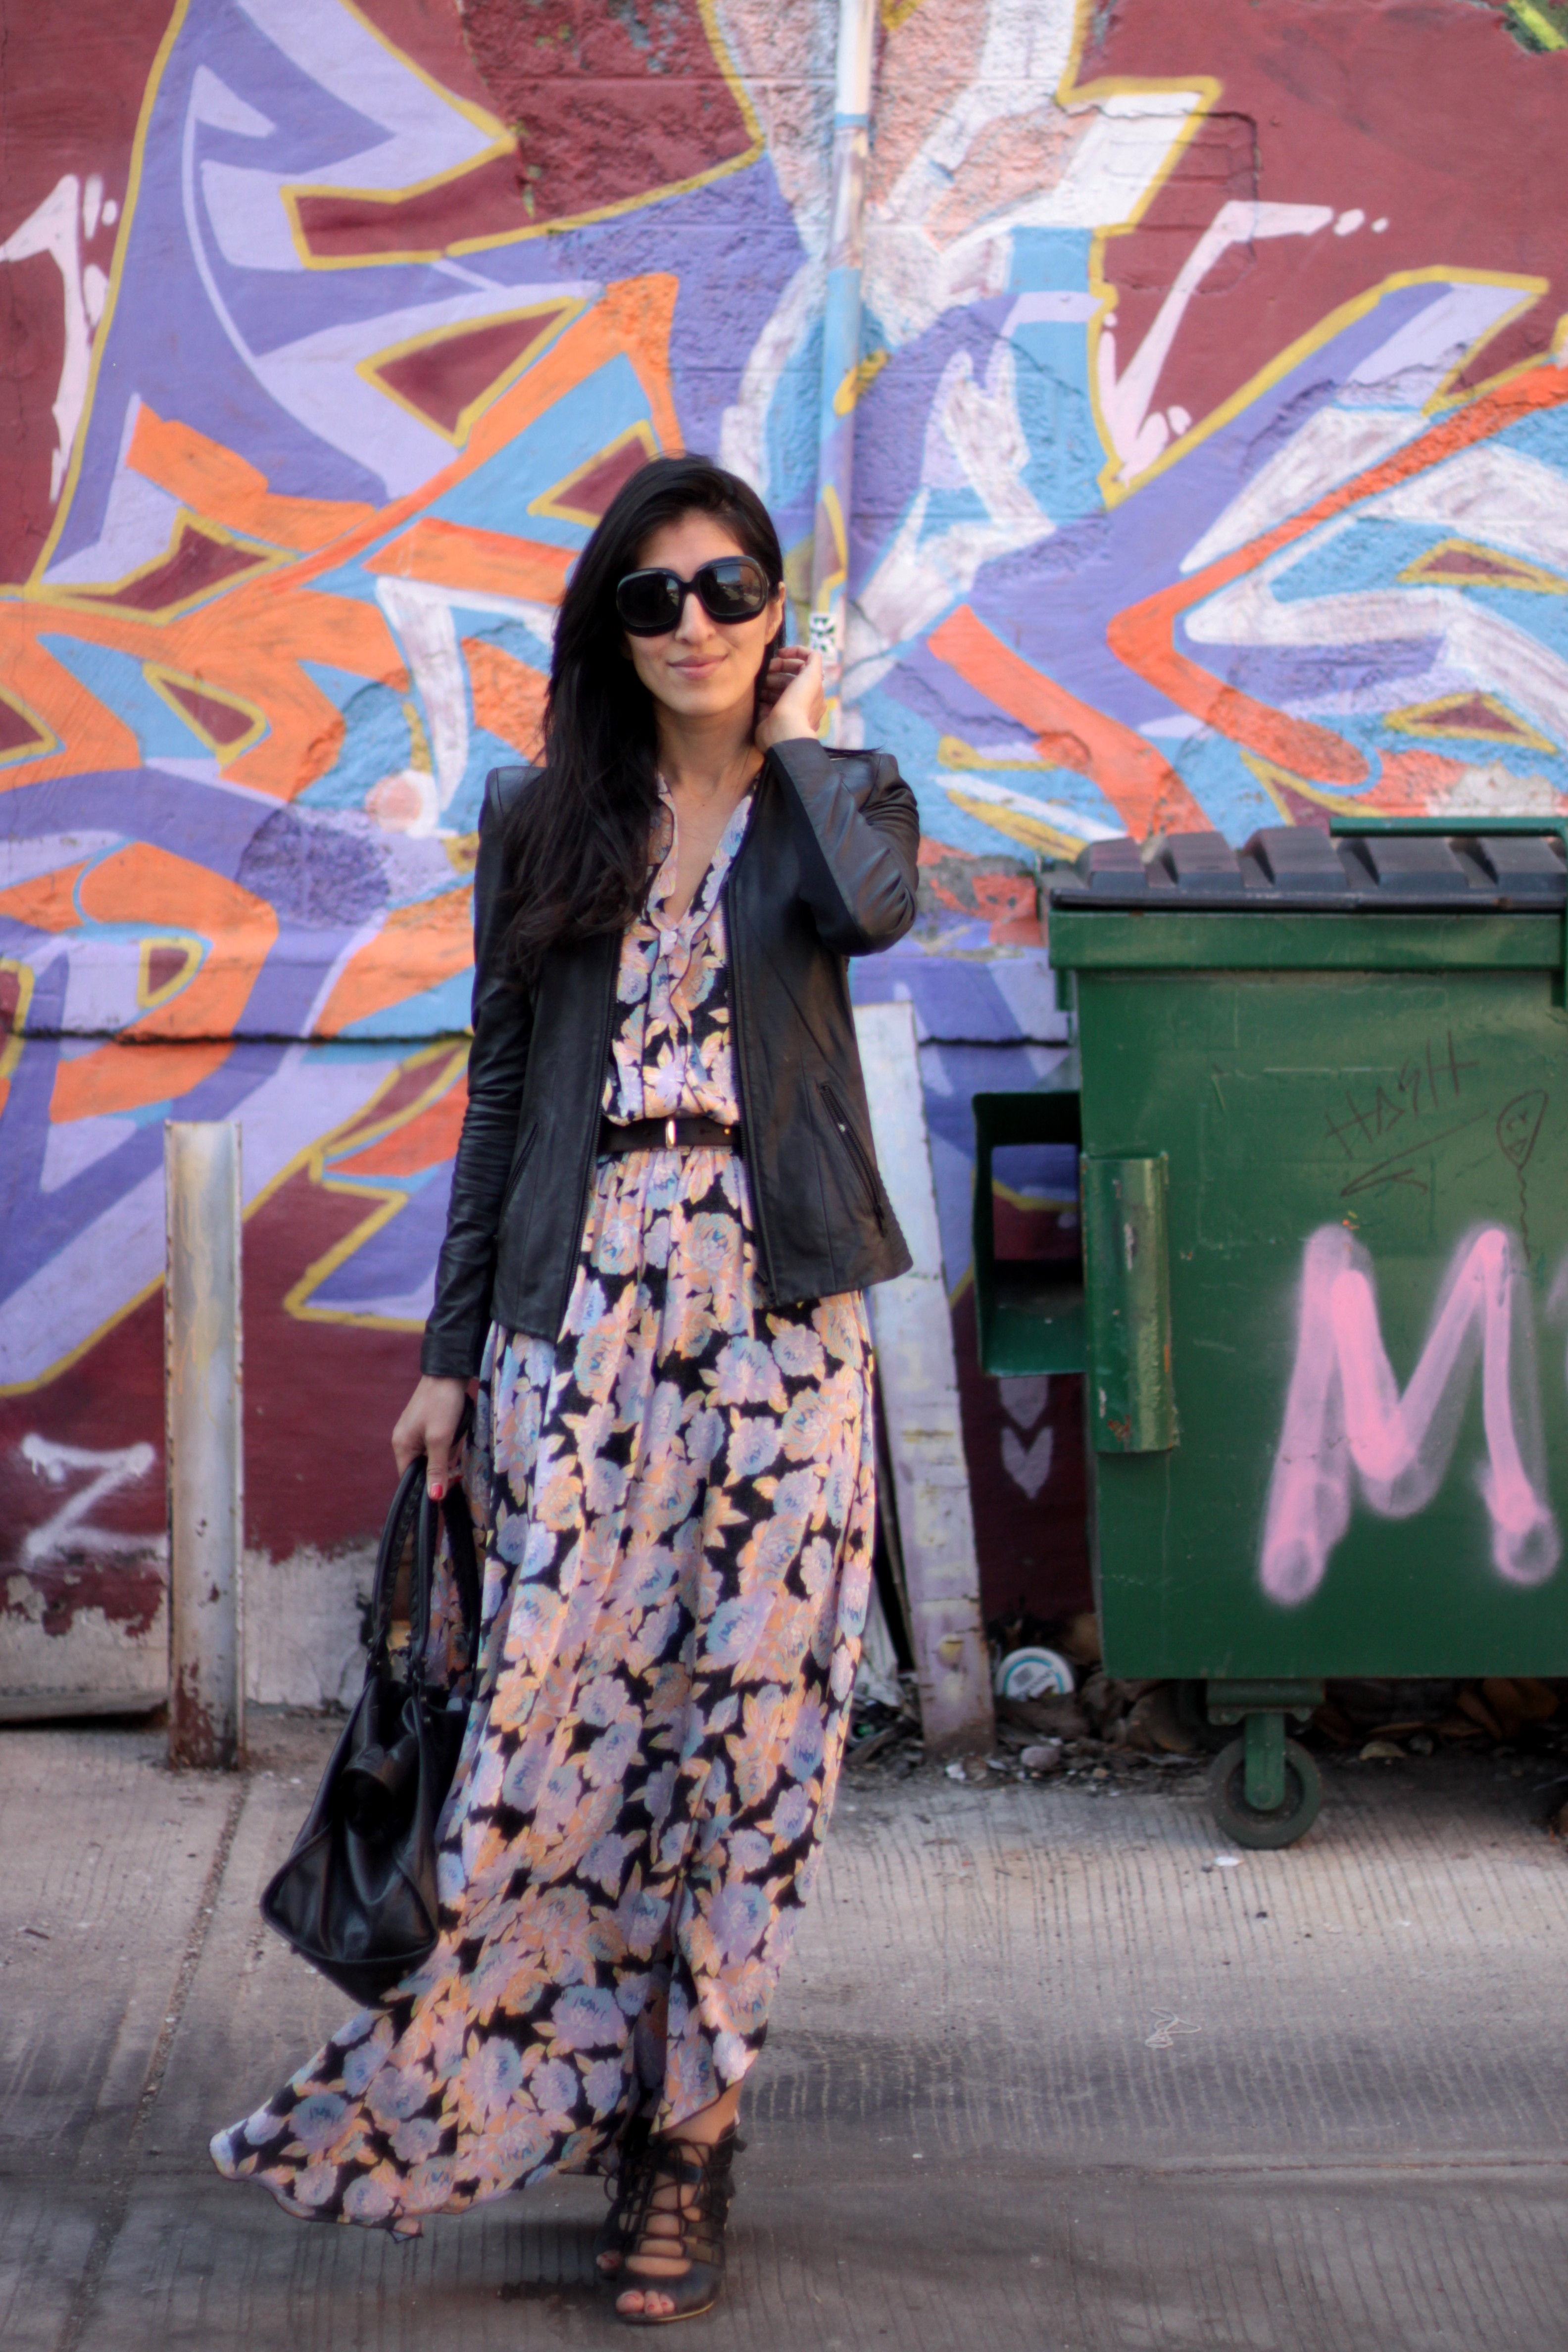 """Feeling VERY """"Devil Wears Prada"""" here with the pastel florals against an urban landscape :D"""